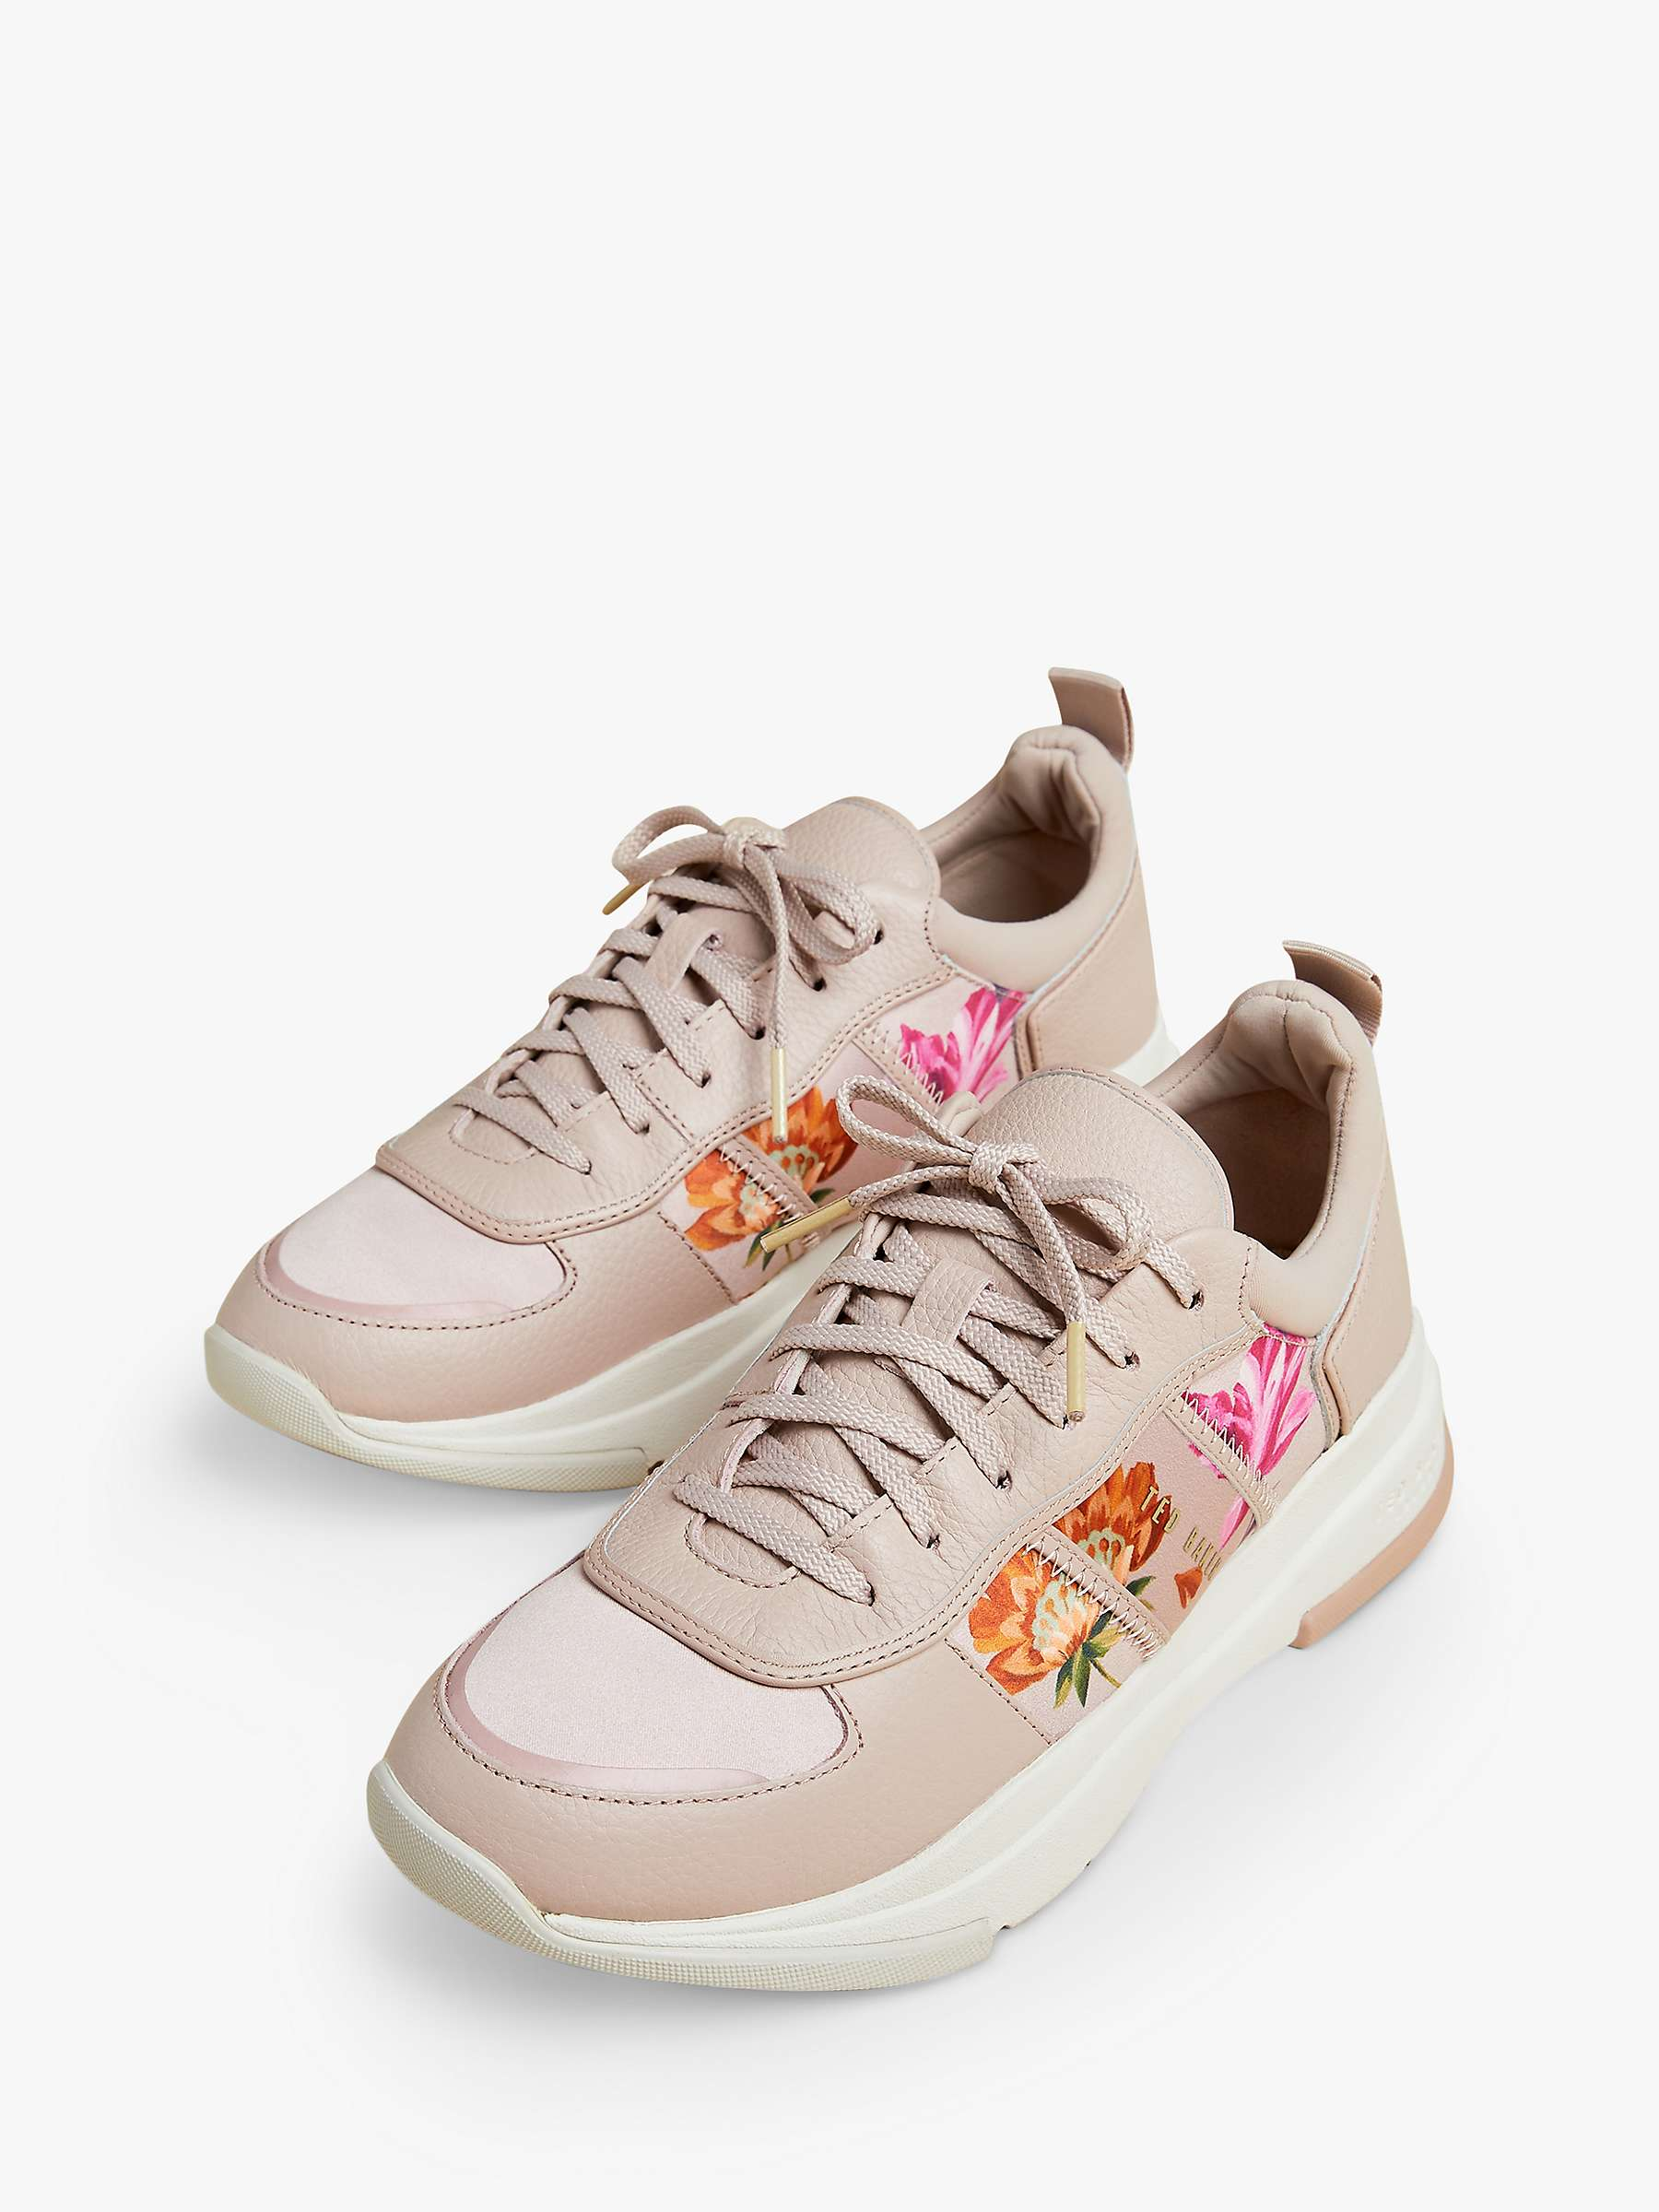 Ted Baker Keatonr Floral Leather Trainers, Pink